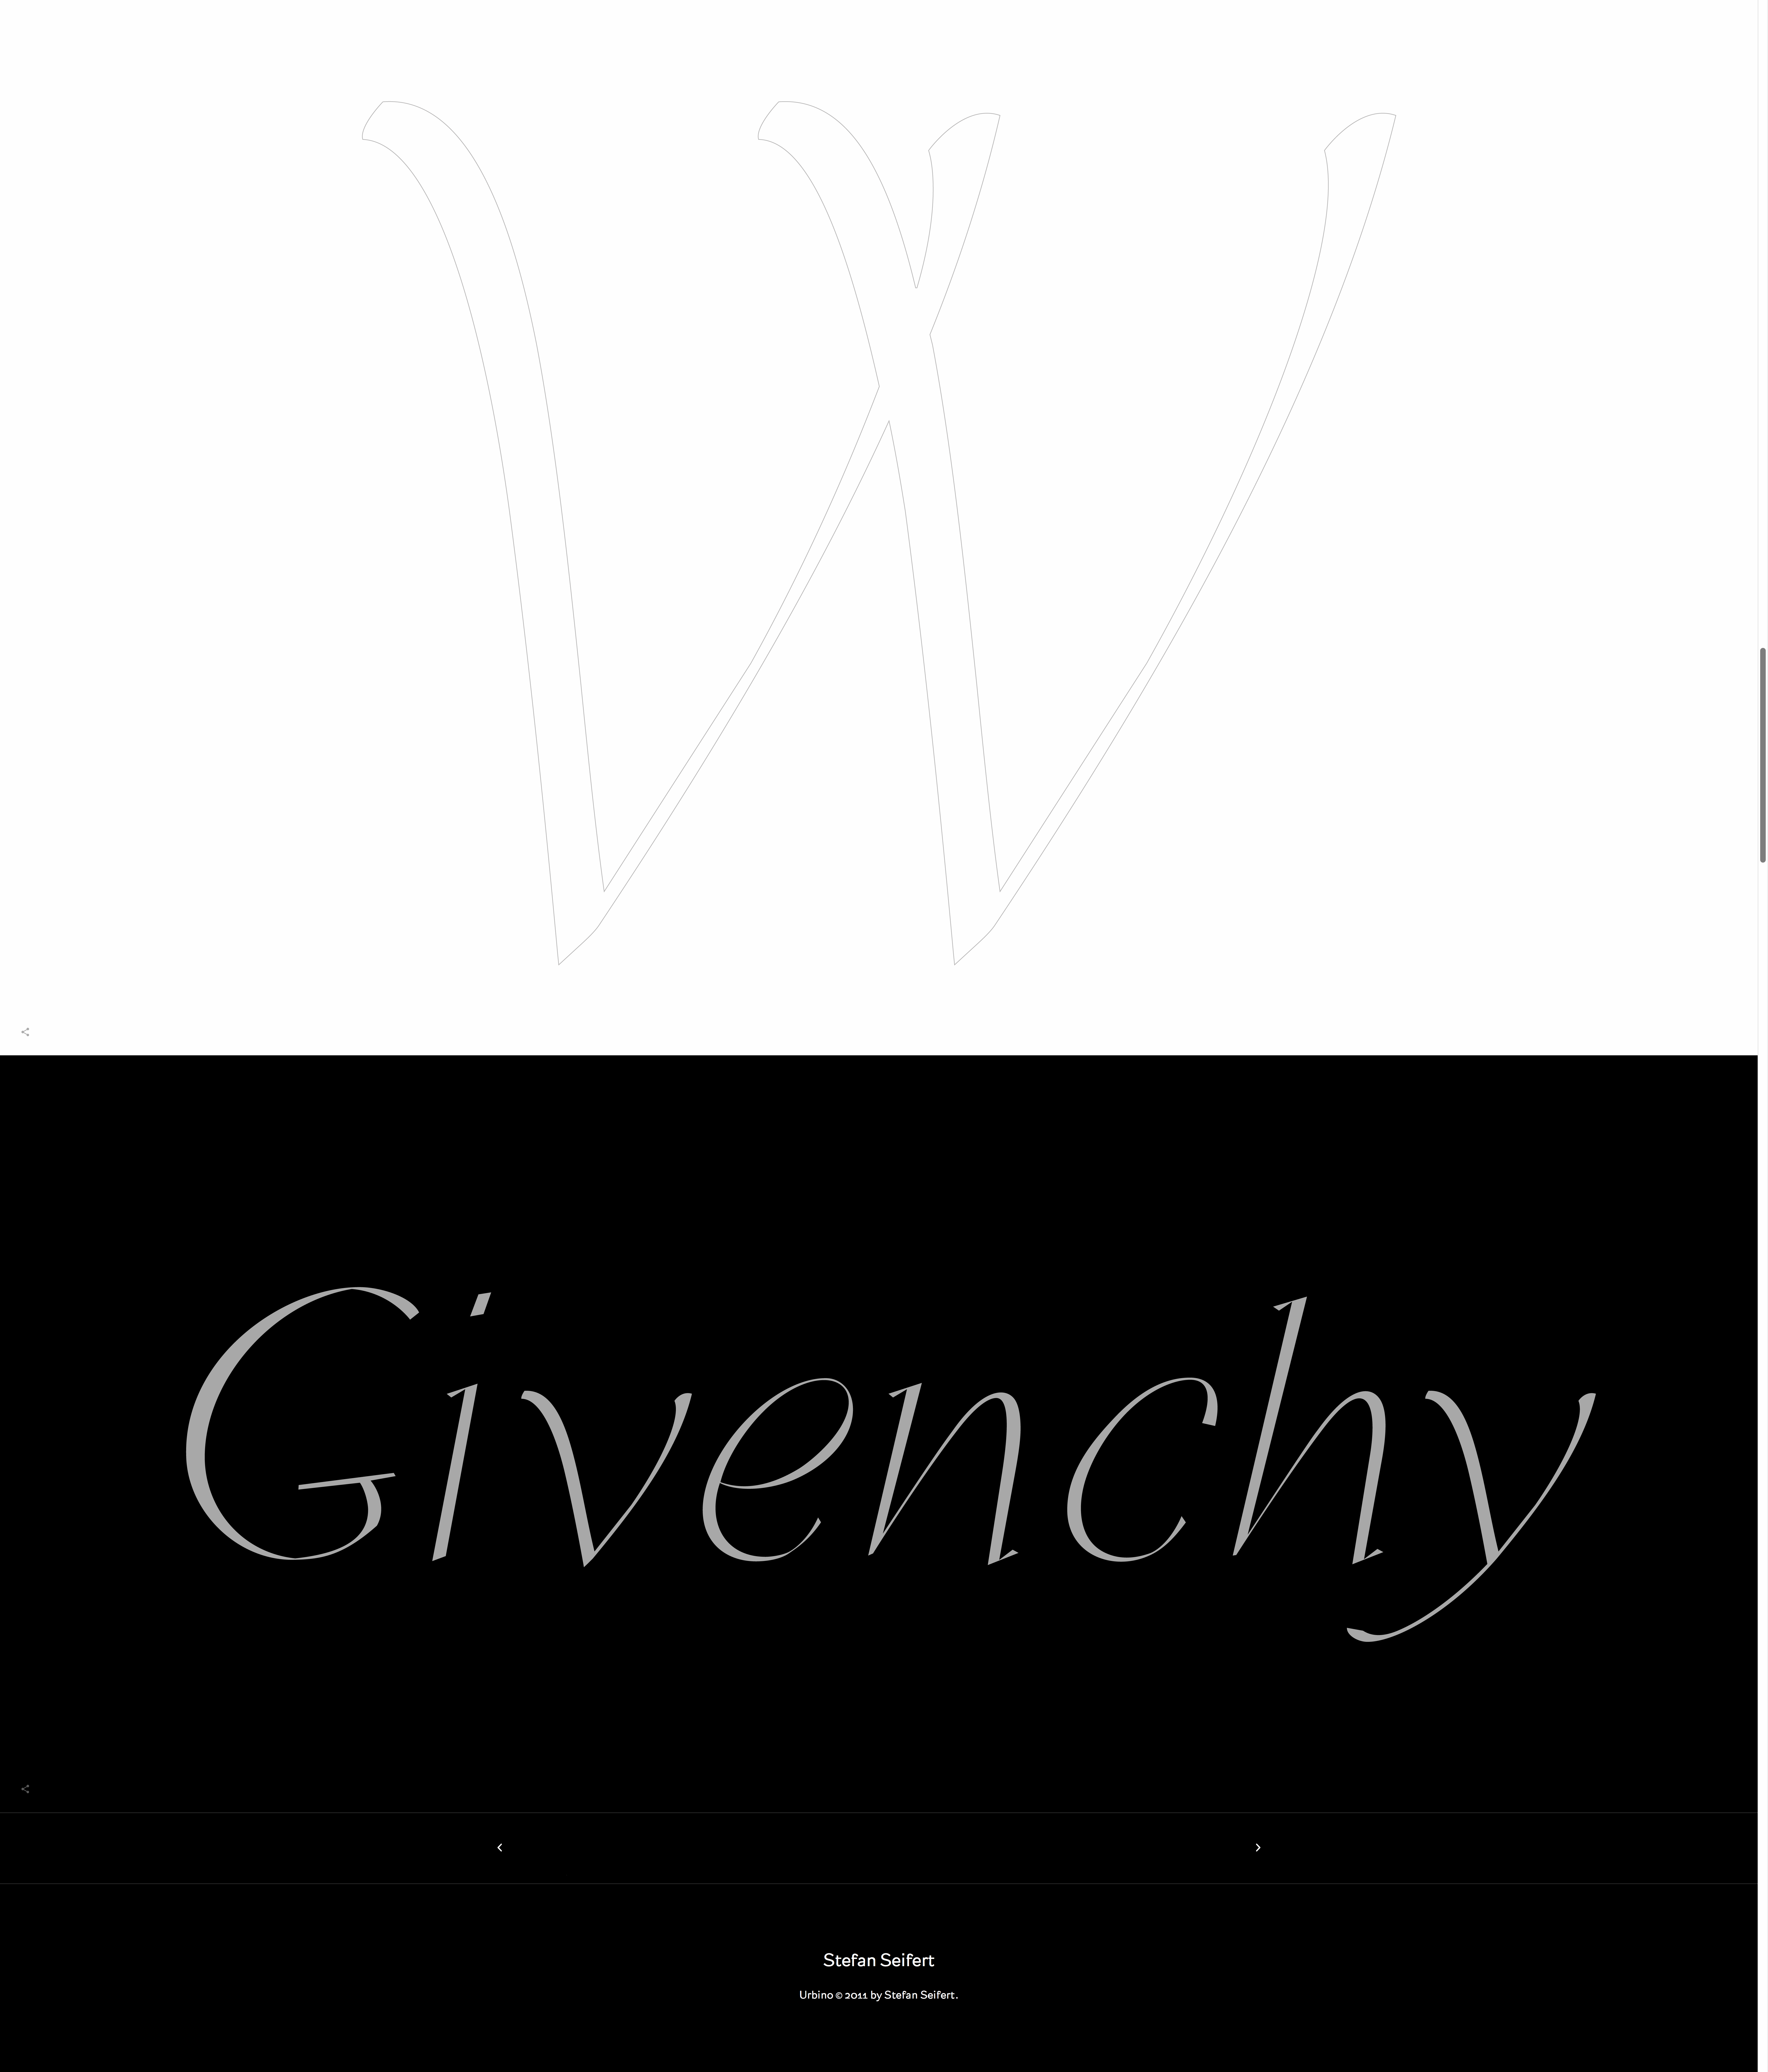 Givenchy in Urbino Typeface